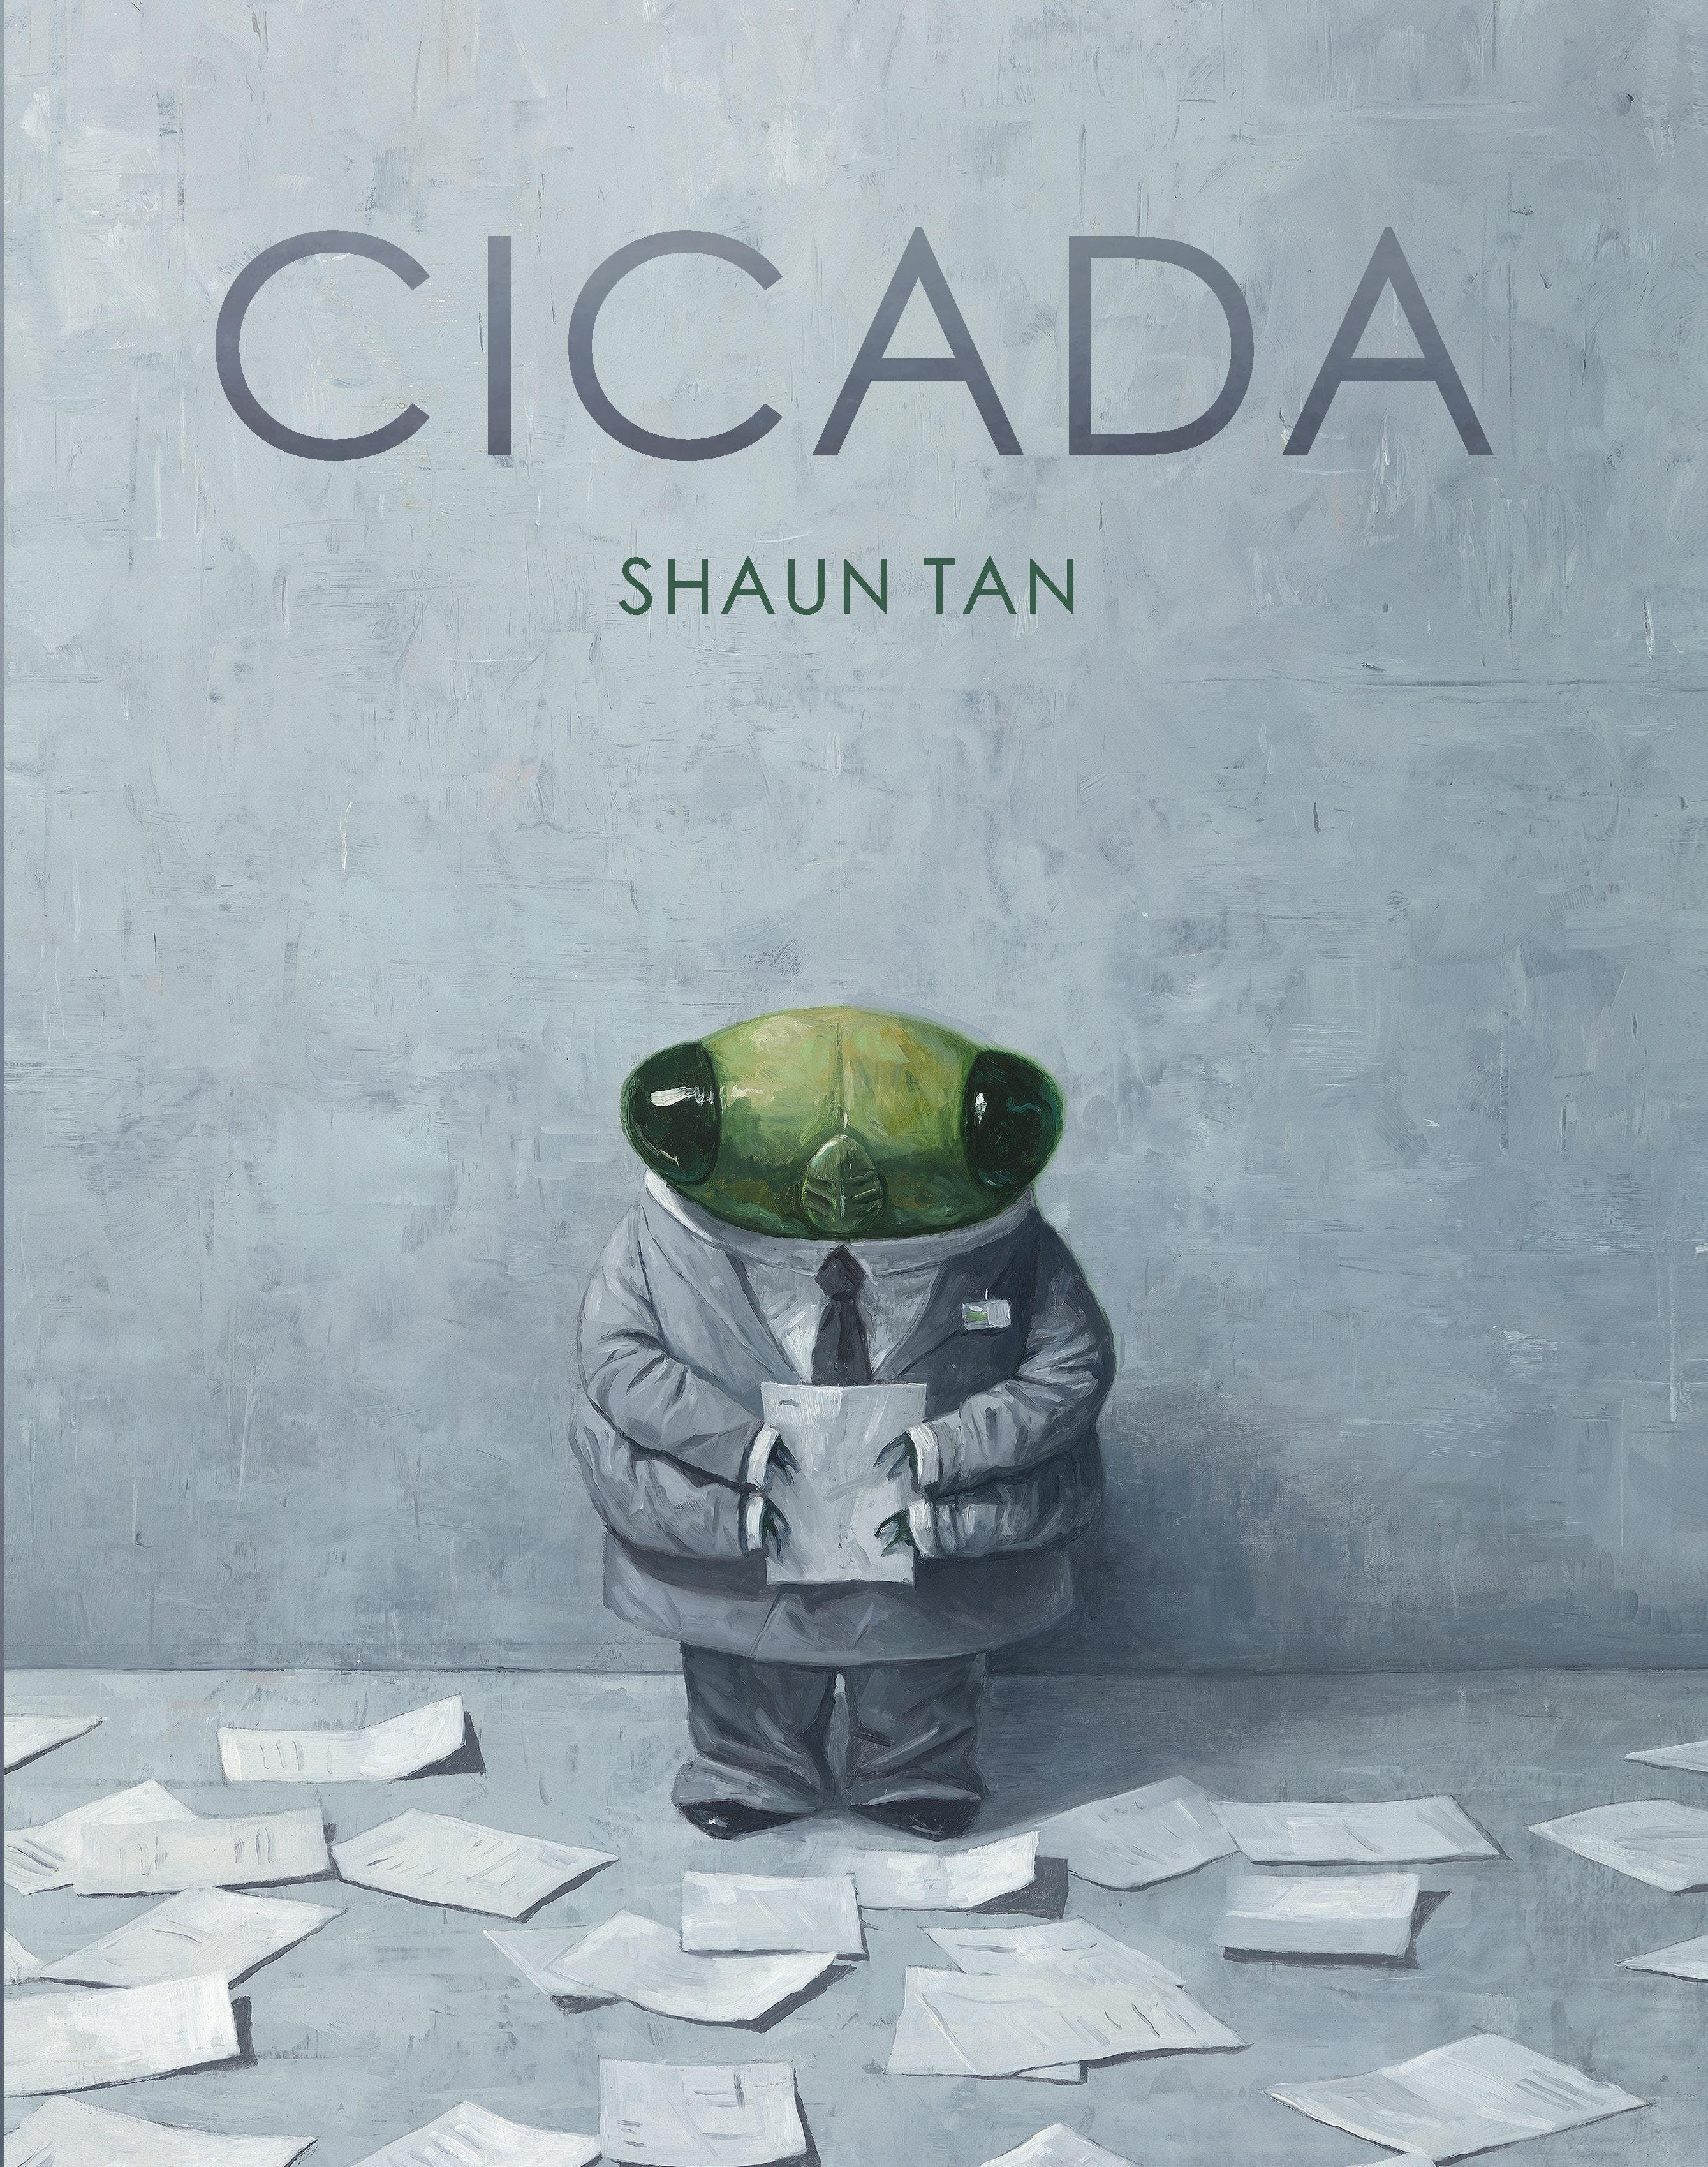 Cicada by Shaun Tan - Exhibition preview and